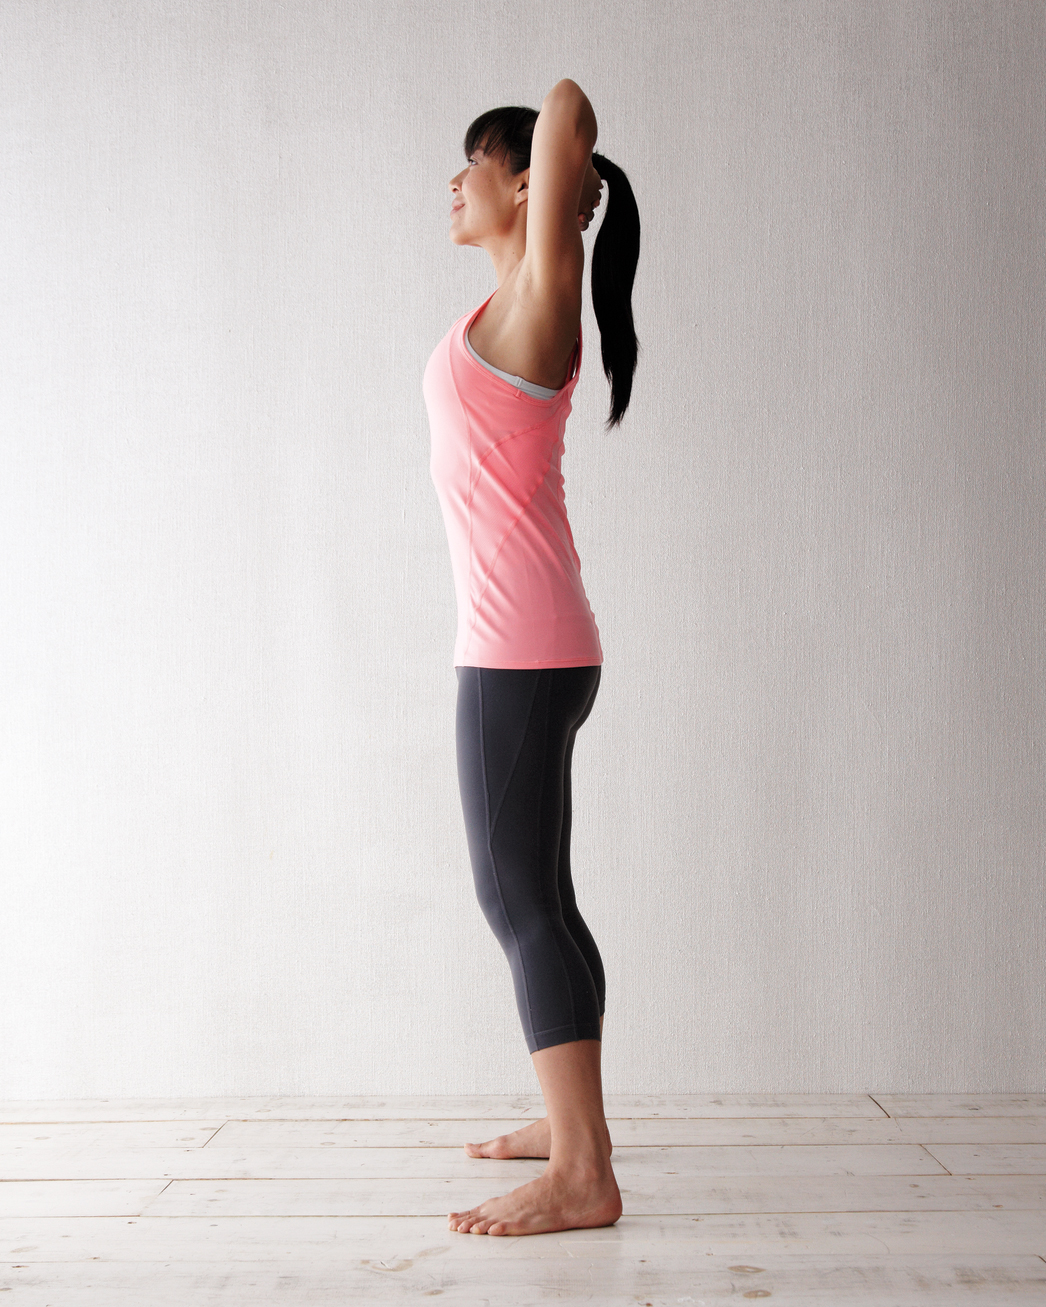 woman doing standing backbend exercise